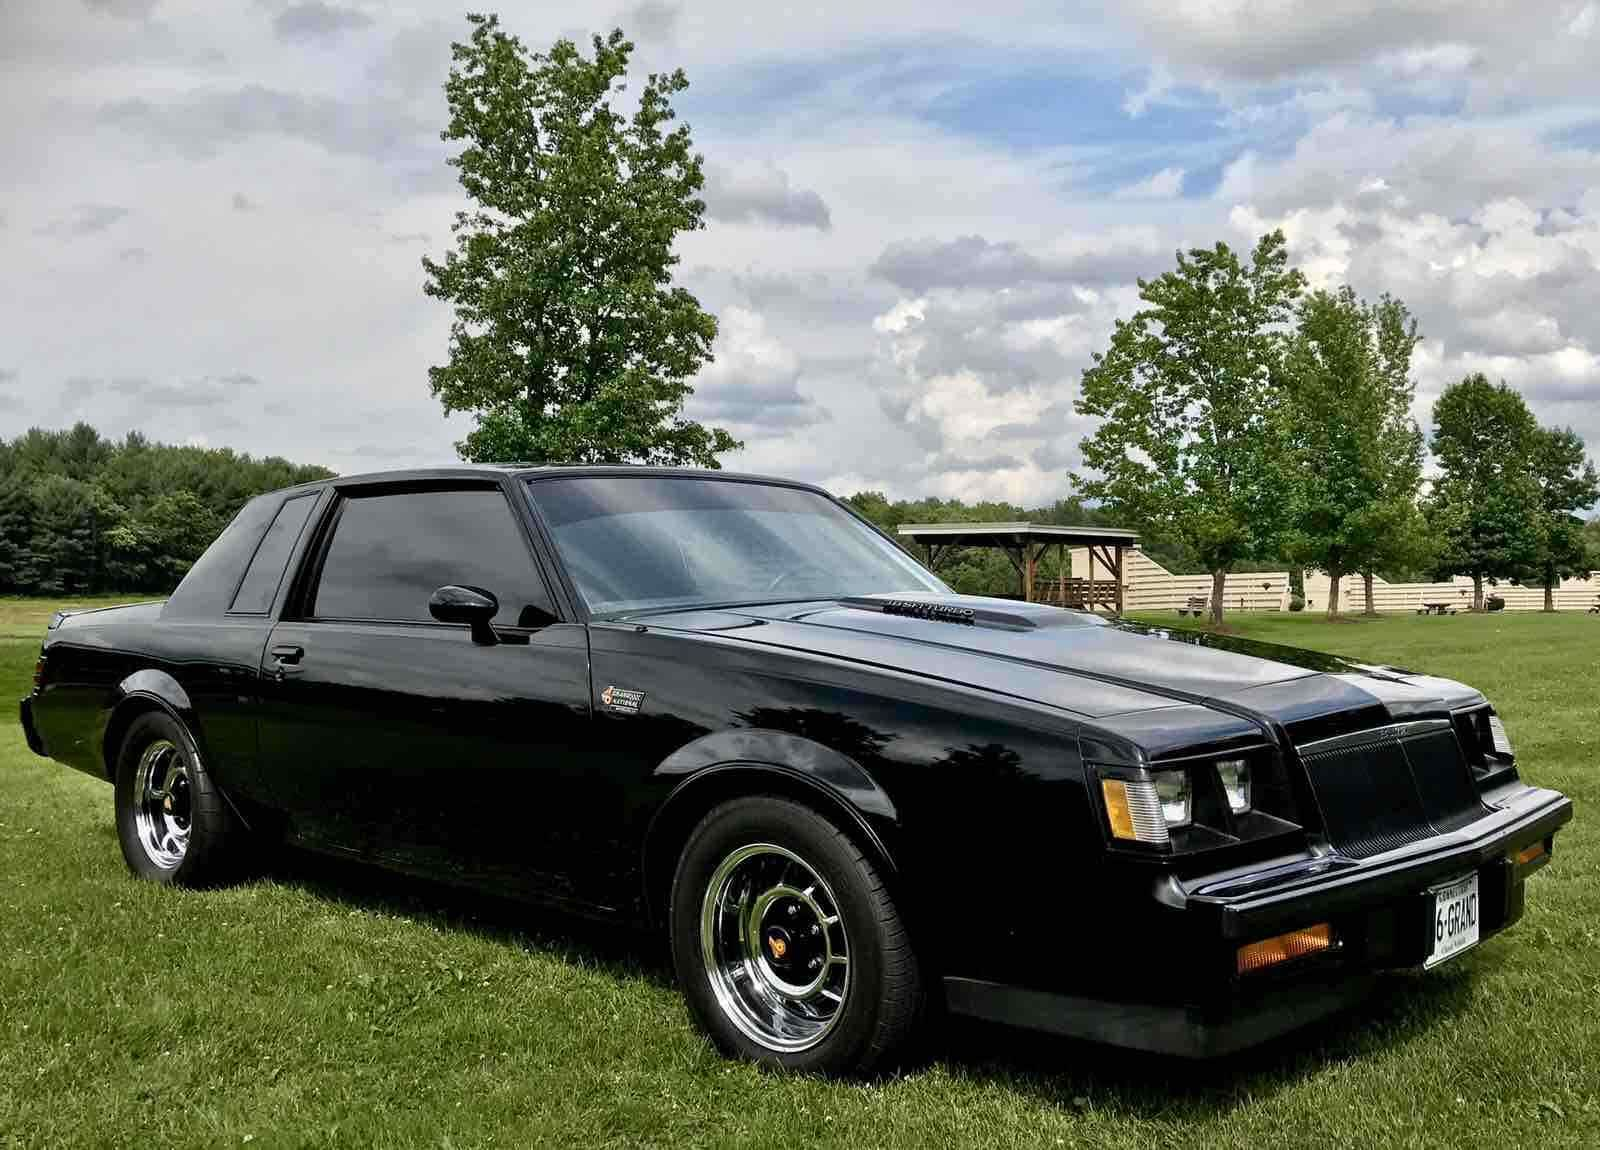 Buick Regal Grand National T Type Turbo 3 8 V6 1986 For Sale Buick Regal Buick Grand National Grand National